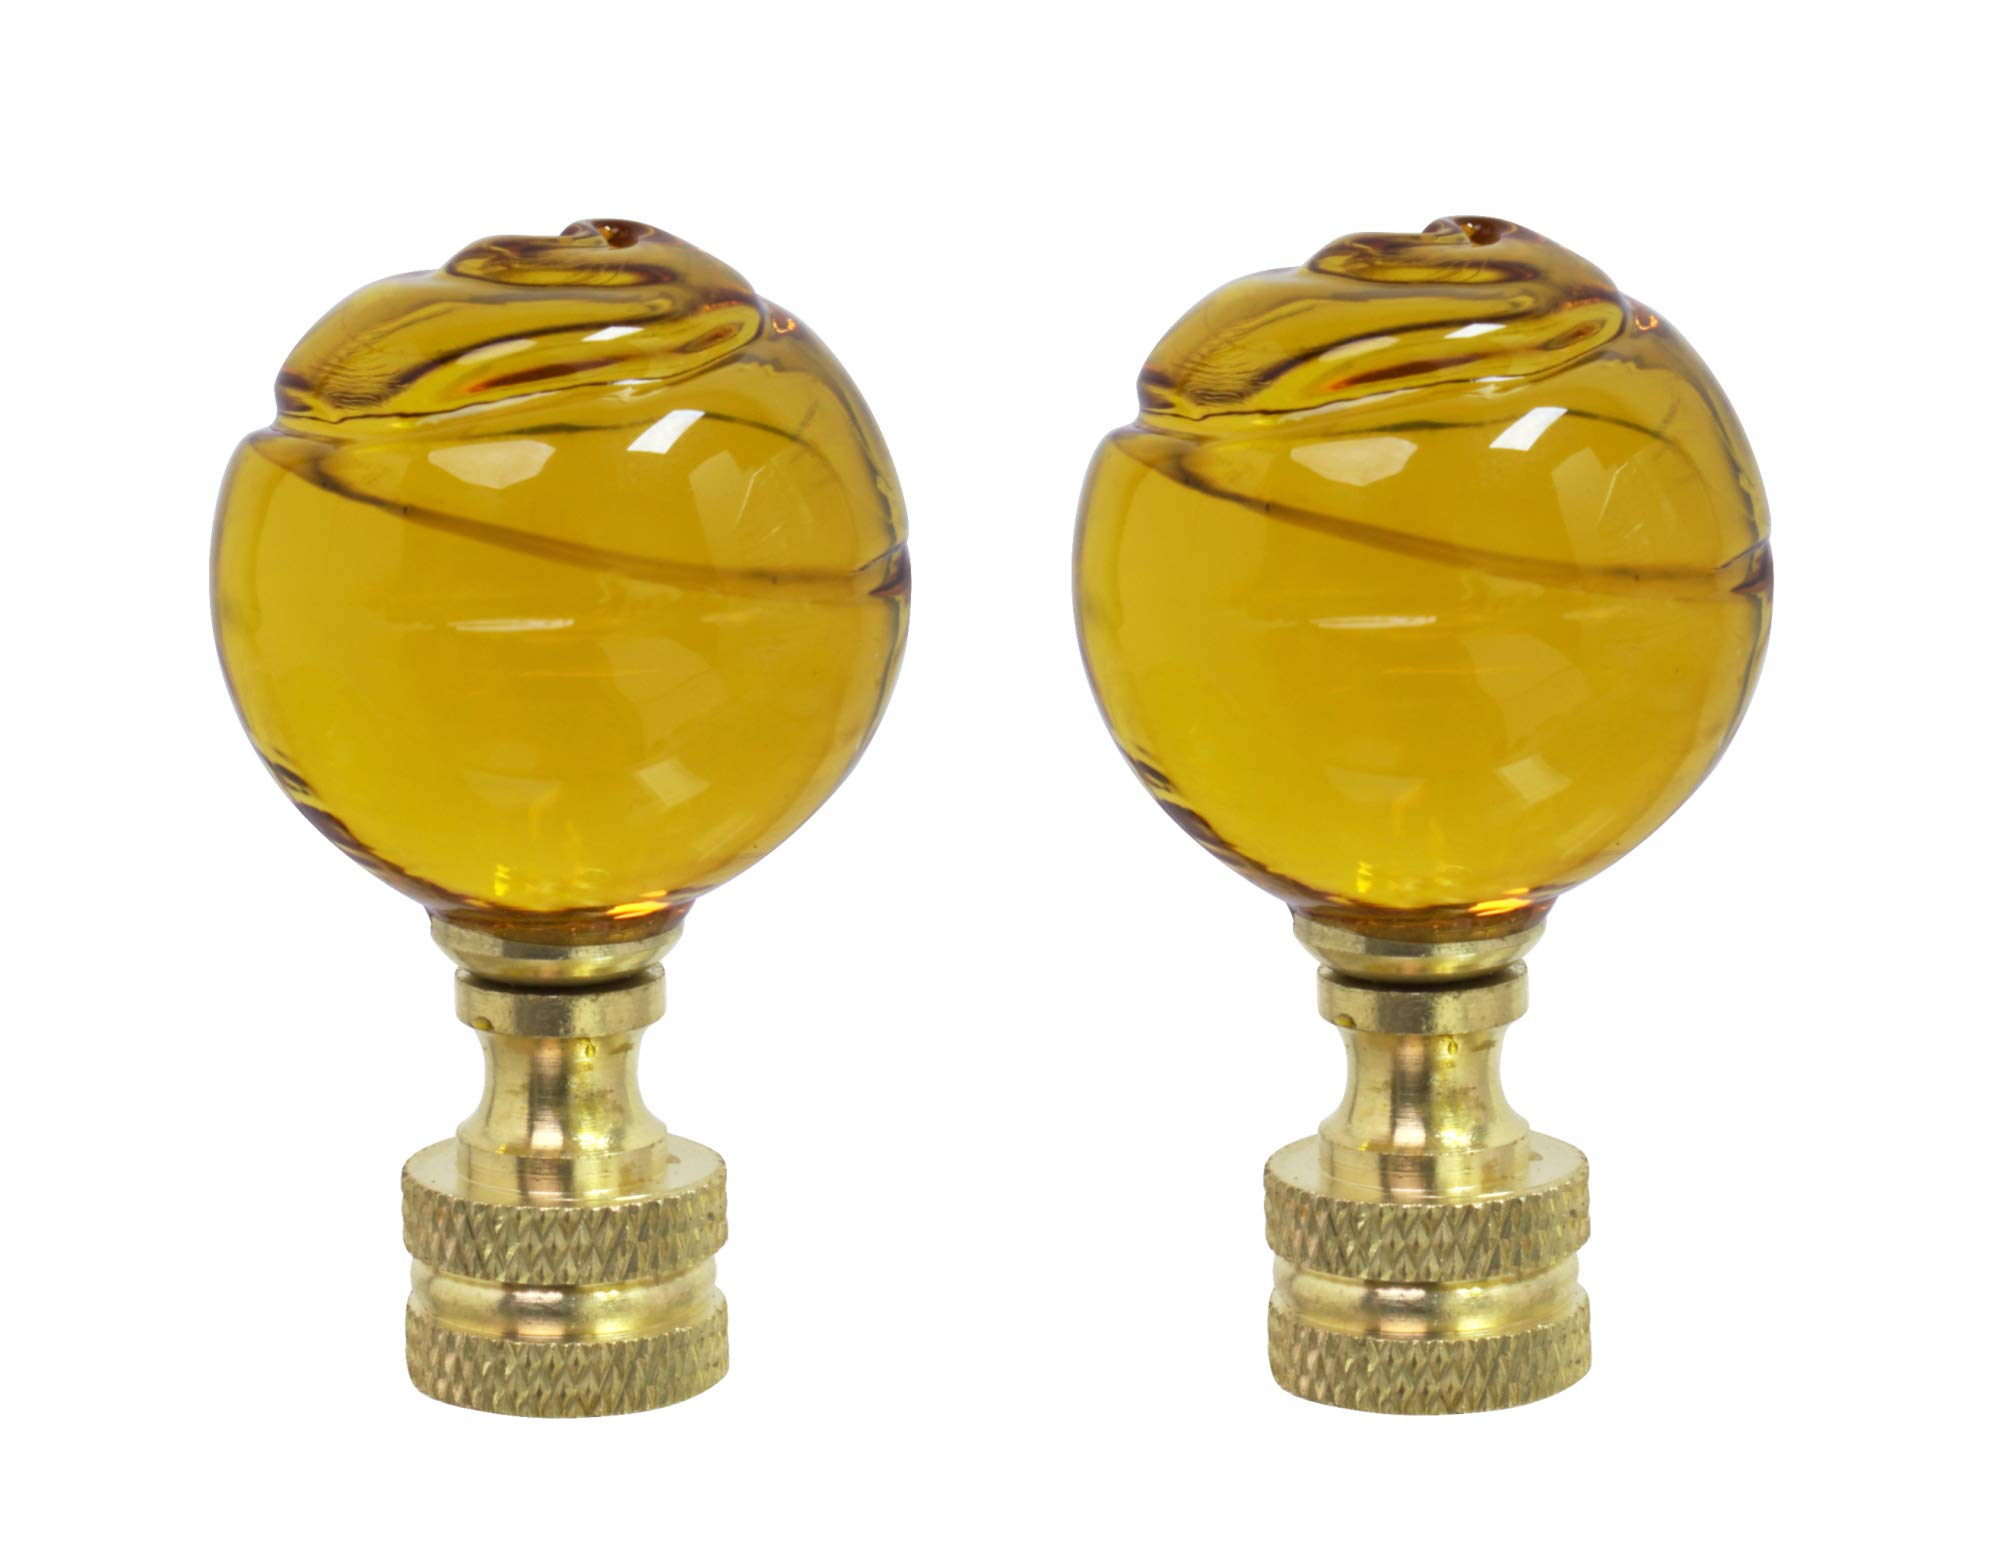 Aspen Creative 24015-12, 2 Pack Yellow Glass Ball Lamp Solid Brass Finish, 2'' Tall Finial